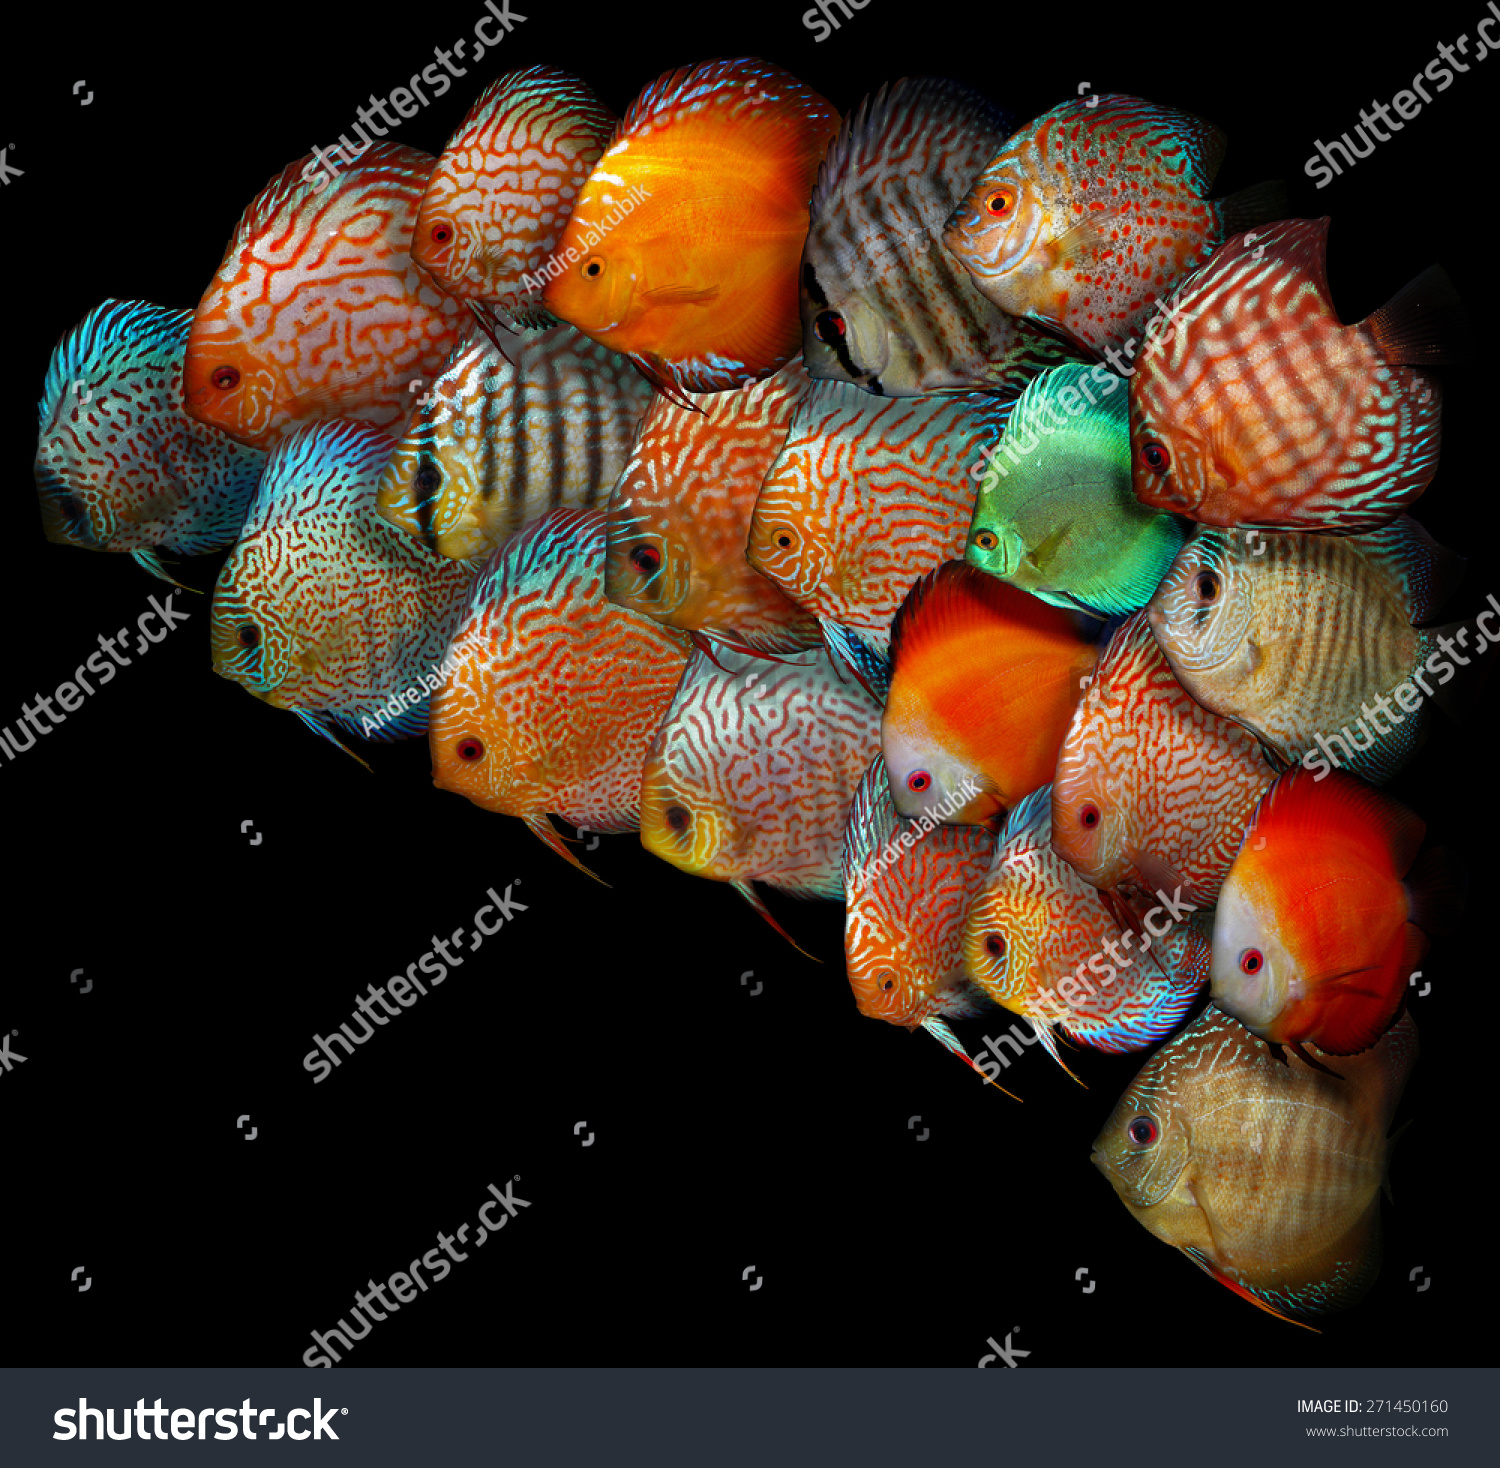 Symphysodon aequifasciatus blue discus aquarium fish south for Fish in the amazon